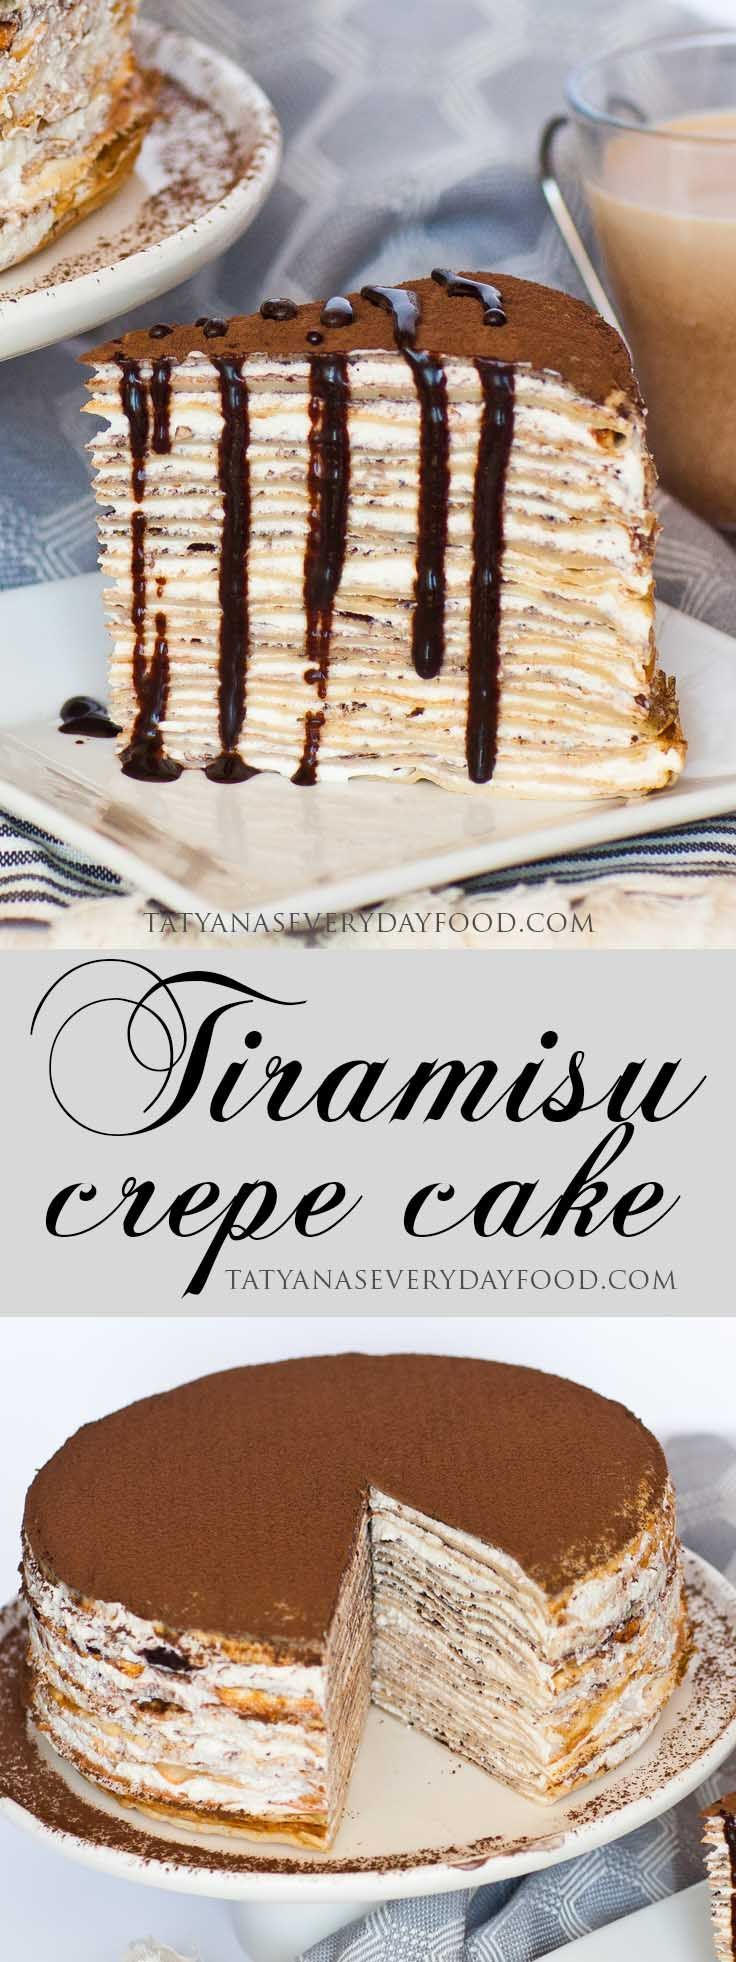 If you love Tiramsiu and crepes, you're going to love my 'Tiramisu Crepe Cake'! I make this cake with delicate, coffee-flavored crepes and fill it with a fluffy whipped cream frosting. Once you cut into the cake, the cake layers speak for themselves; a simple and elegant finish is all the cake needs! This cake […]